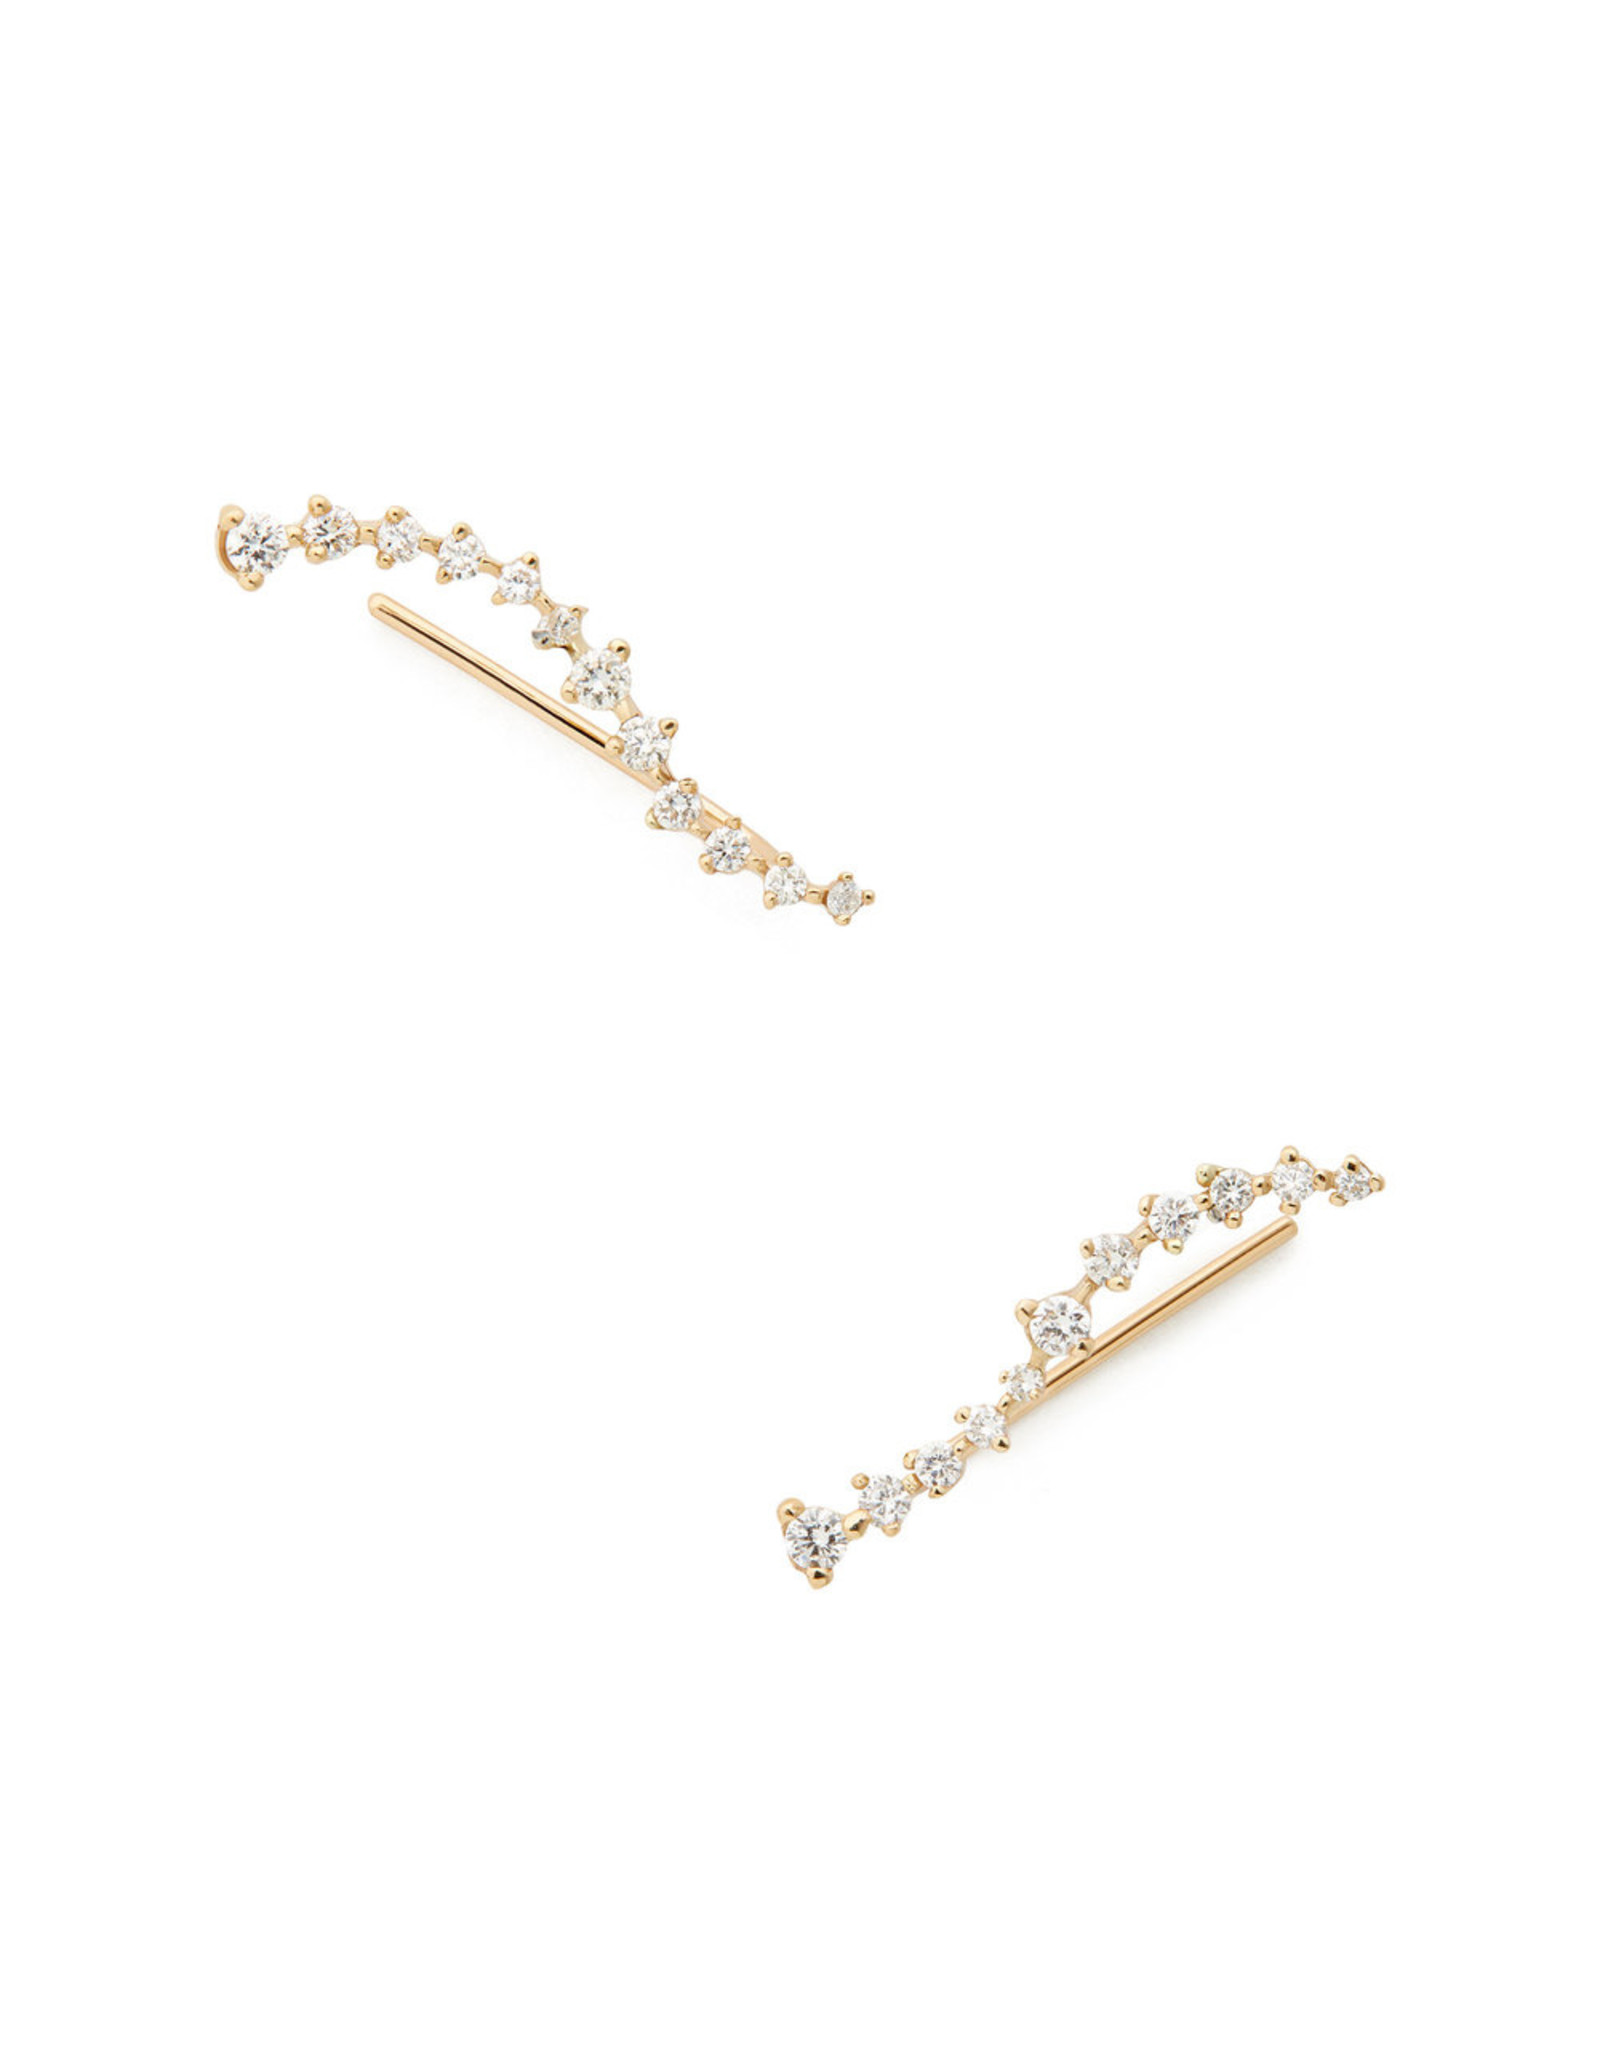 Sophie Ratner Sophie Ratner Diamond Swell Ear Climbers - Yellow Gold / White Diamonds